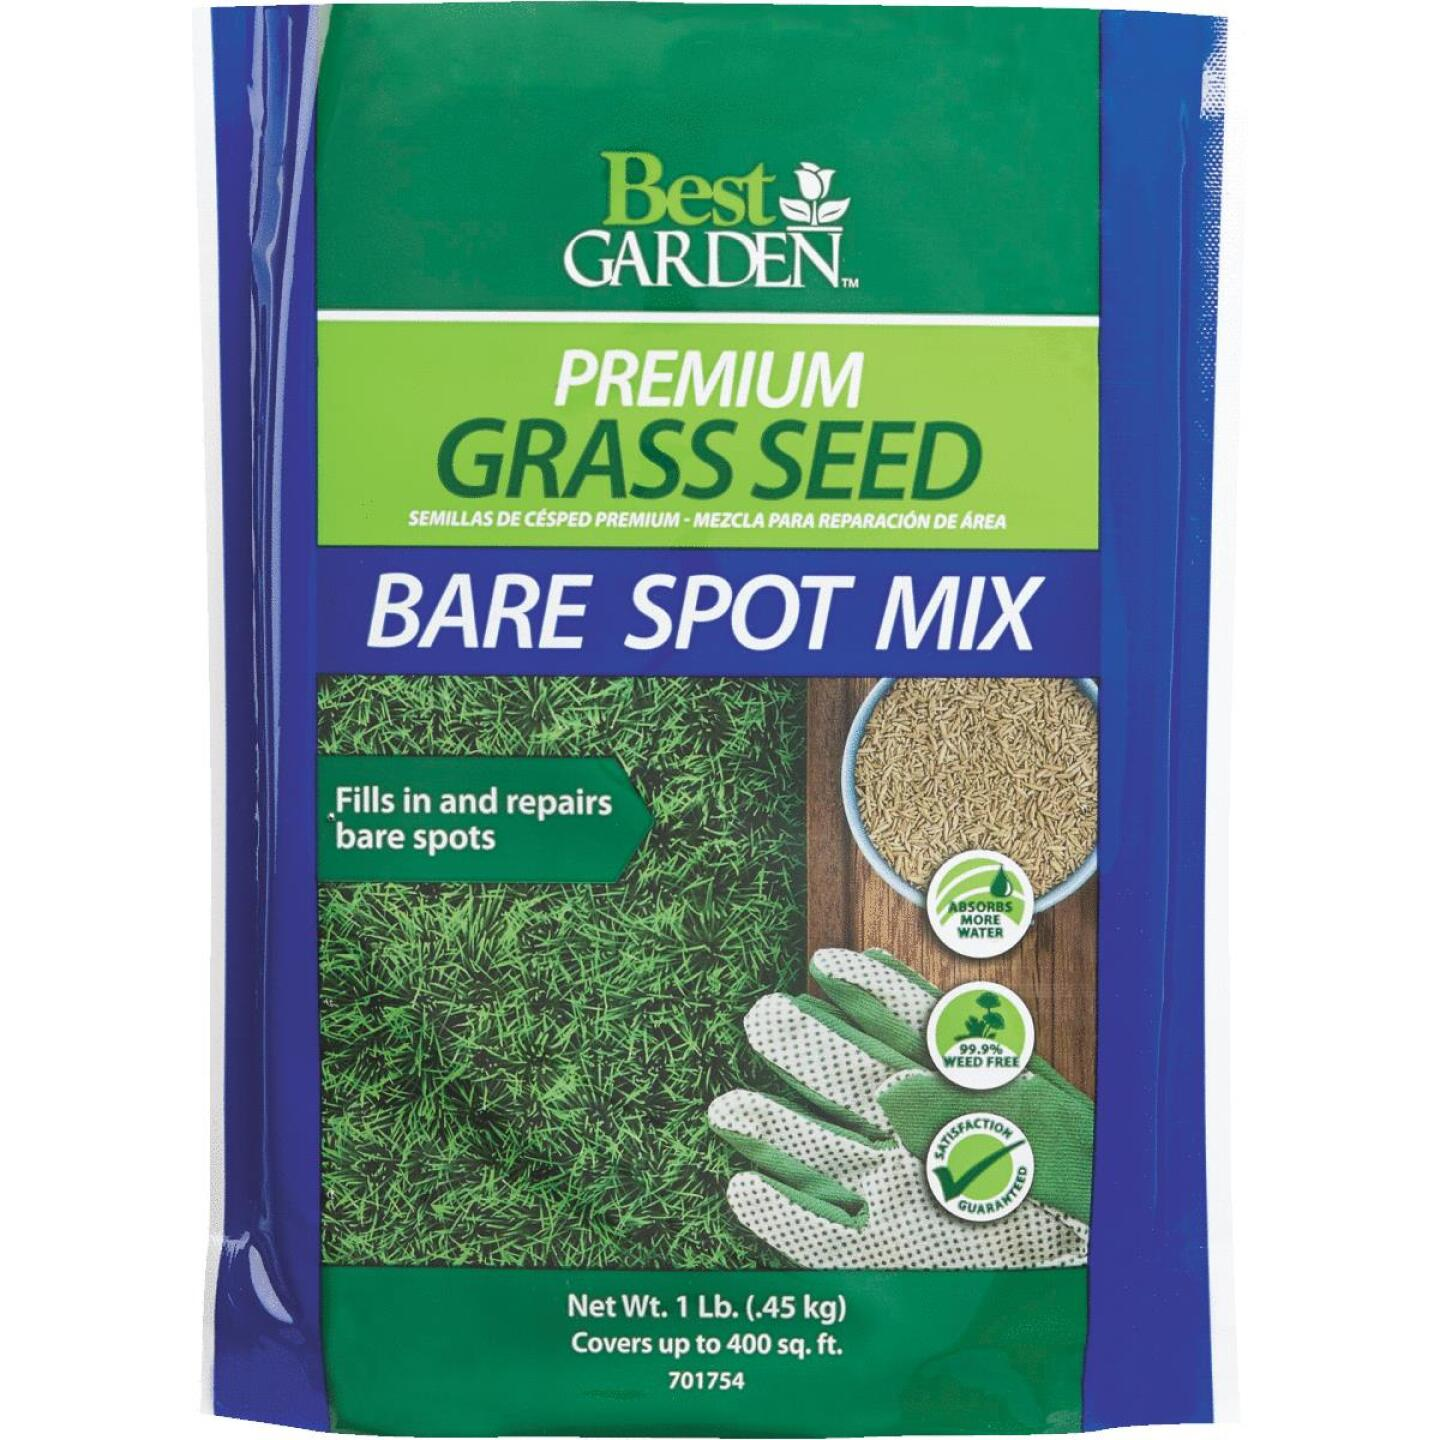 Best Garden 1 Lb. 250 Sq. Ft. Coverage Ryegrass, Red Fescue, & KY Bluegrass Grass Seed Image 1